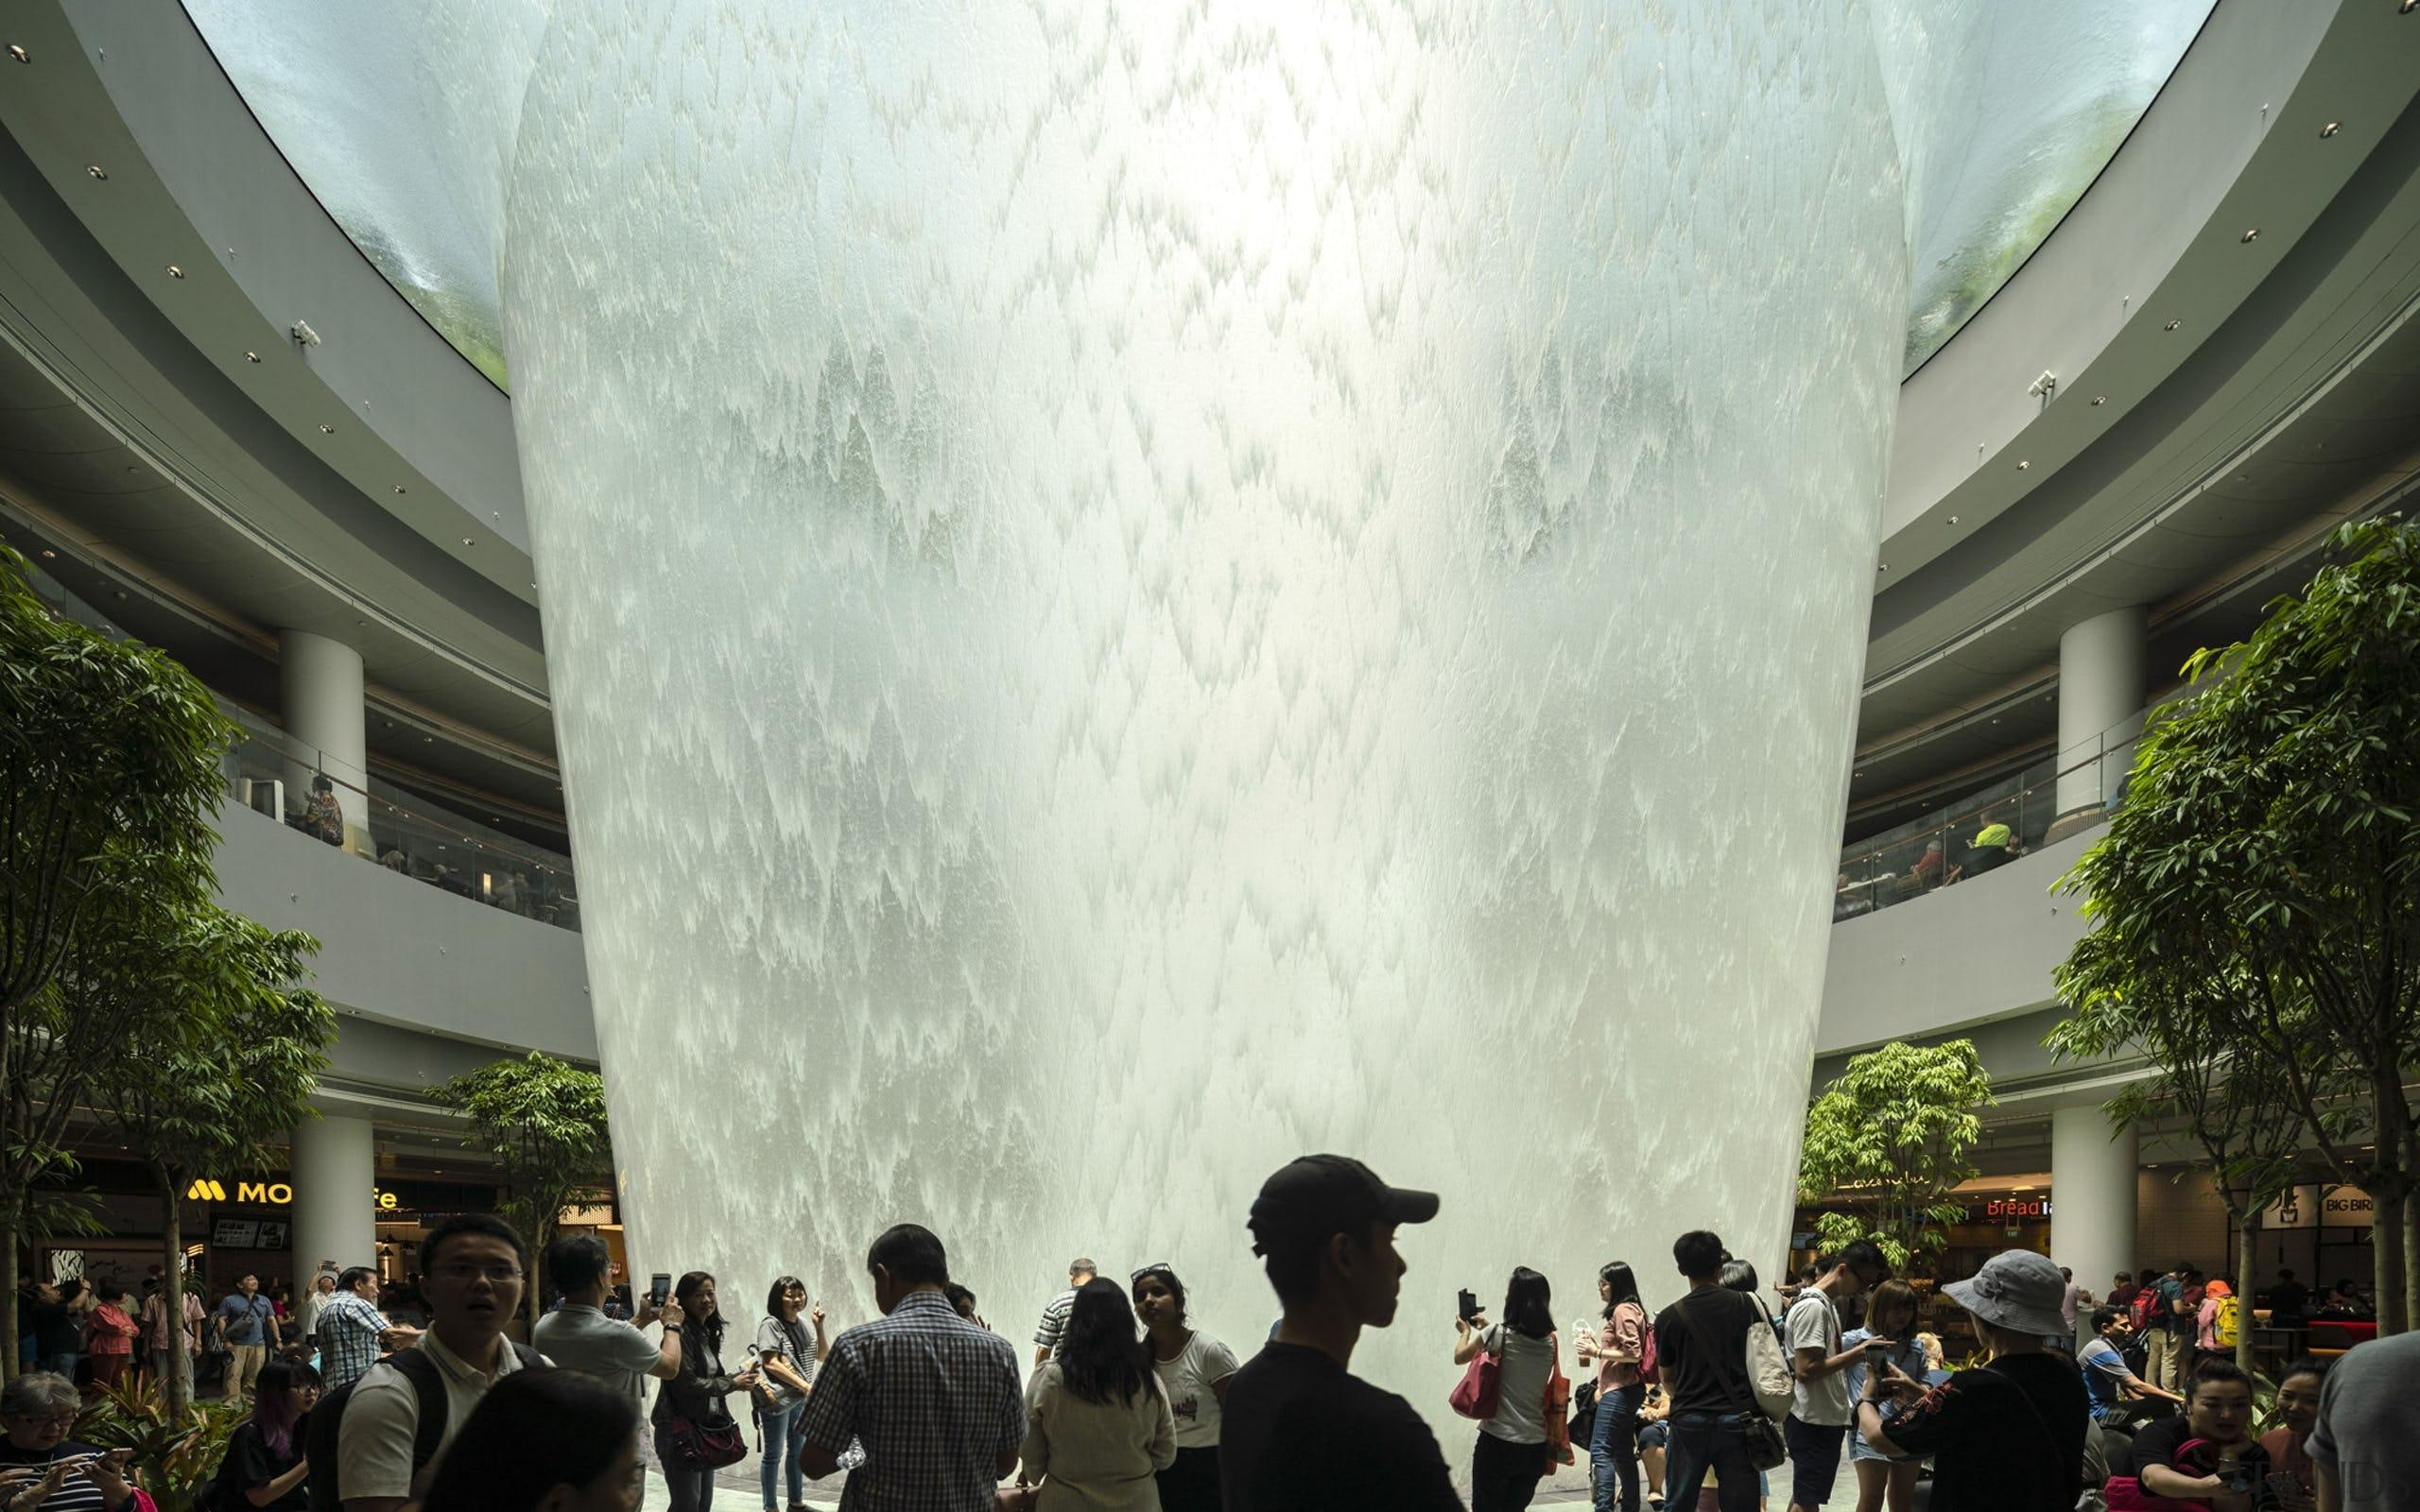 Jewel Changi Airport boasts a hub with quite architecture, crowd, event, fountain, tree, white